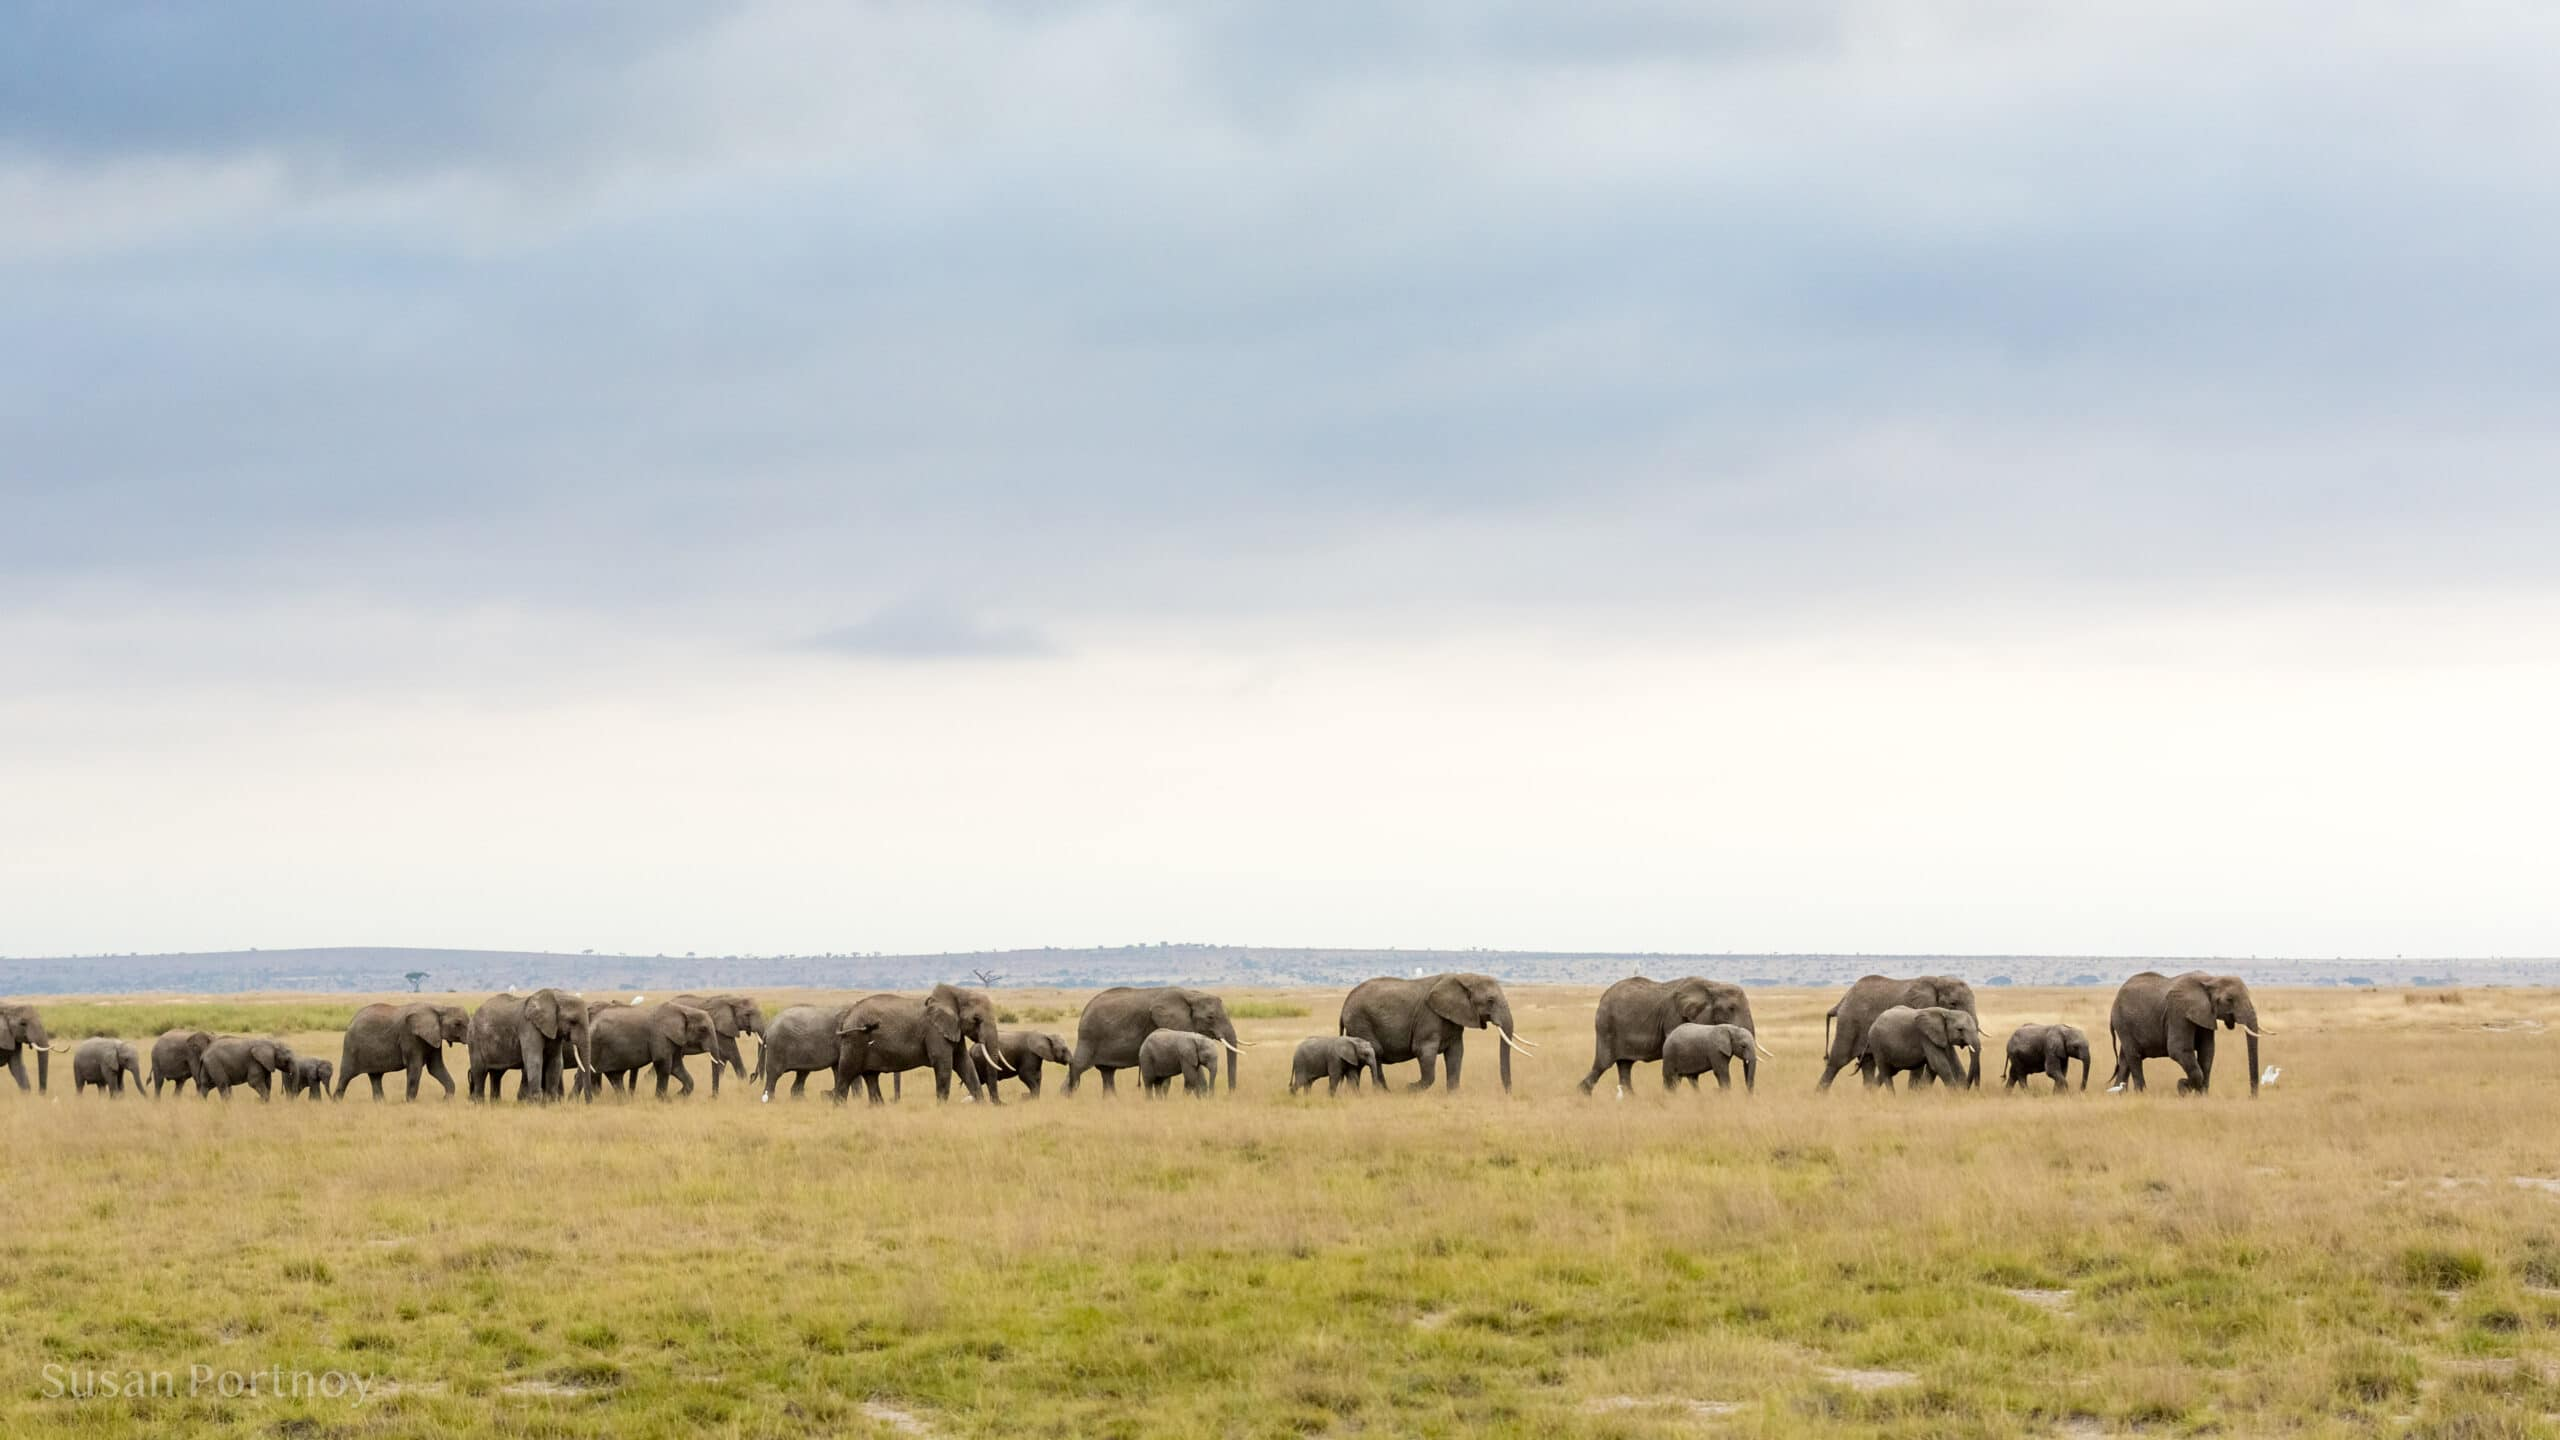 Large herd of elephants in Amboseli, Kenya